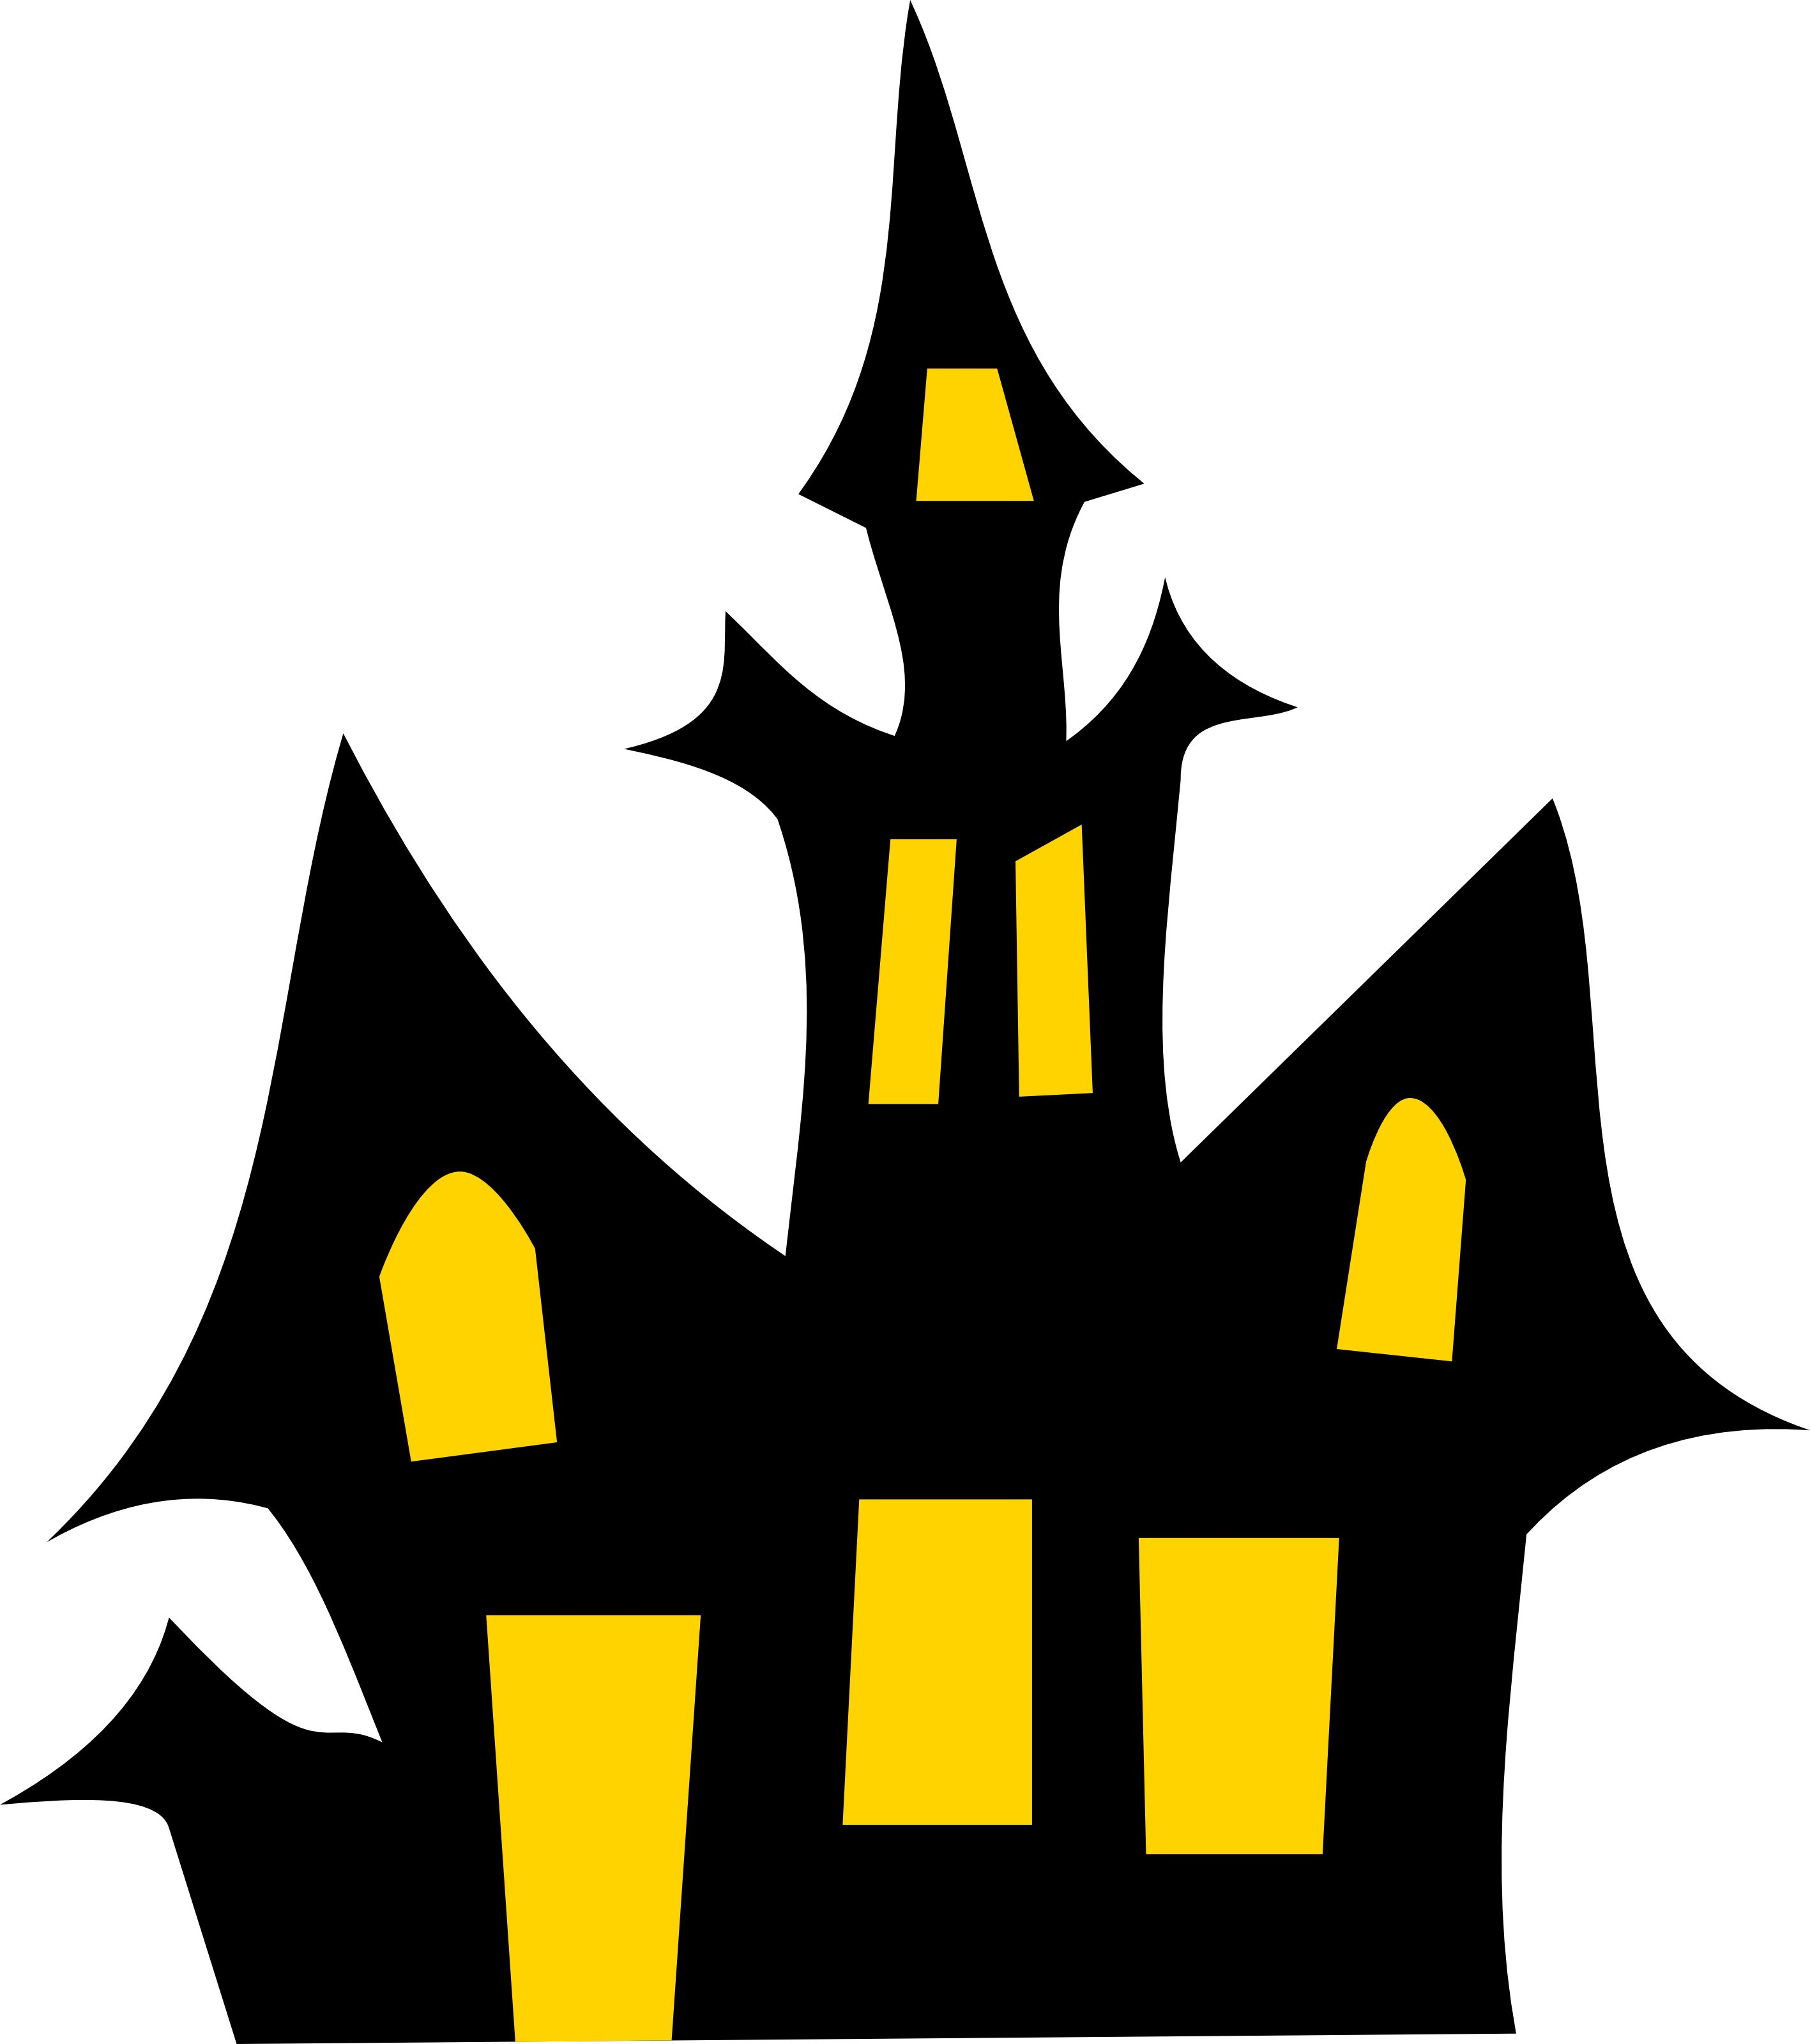 Free Haunted House Halloween Vector Clipart Illustration in.